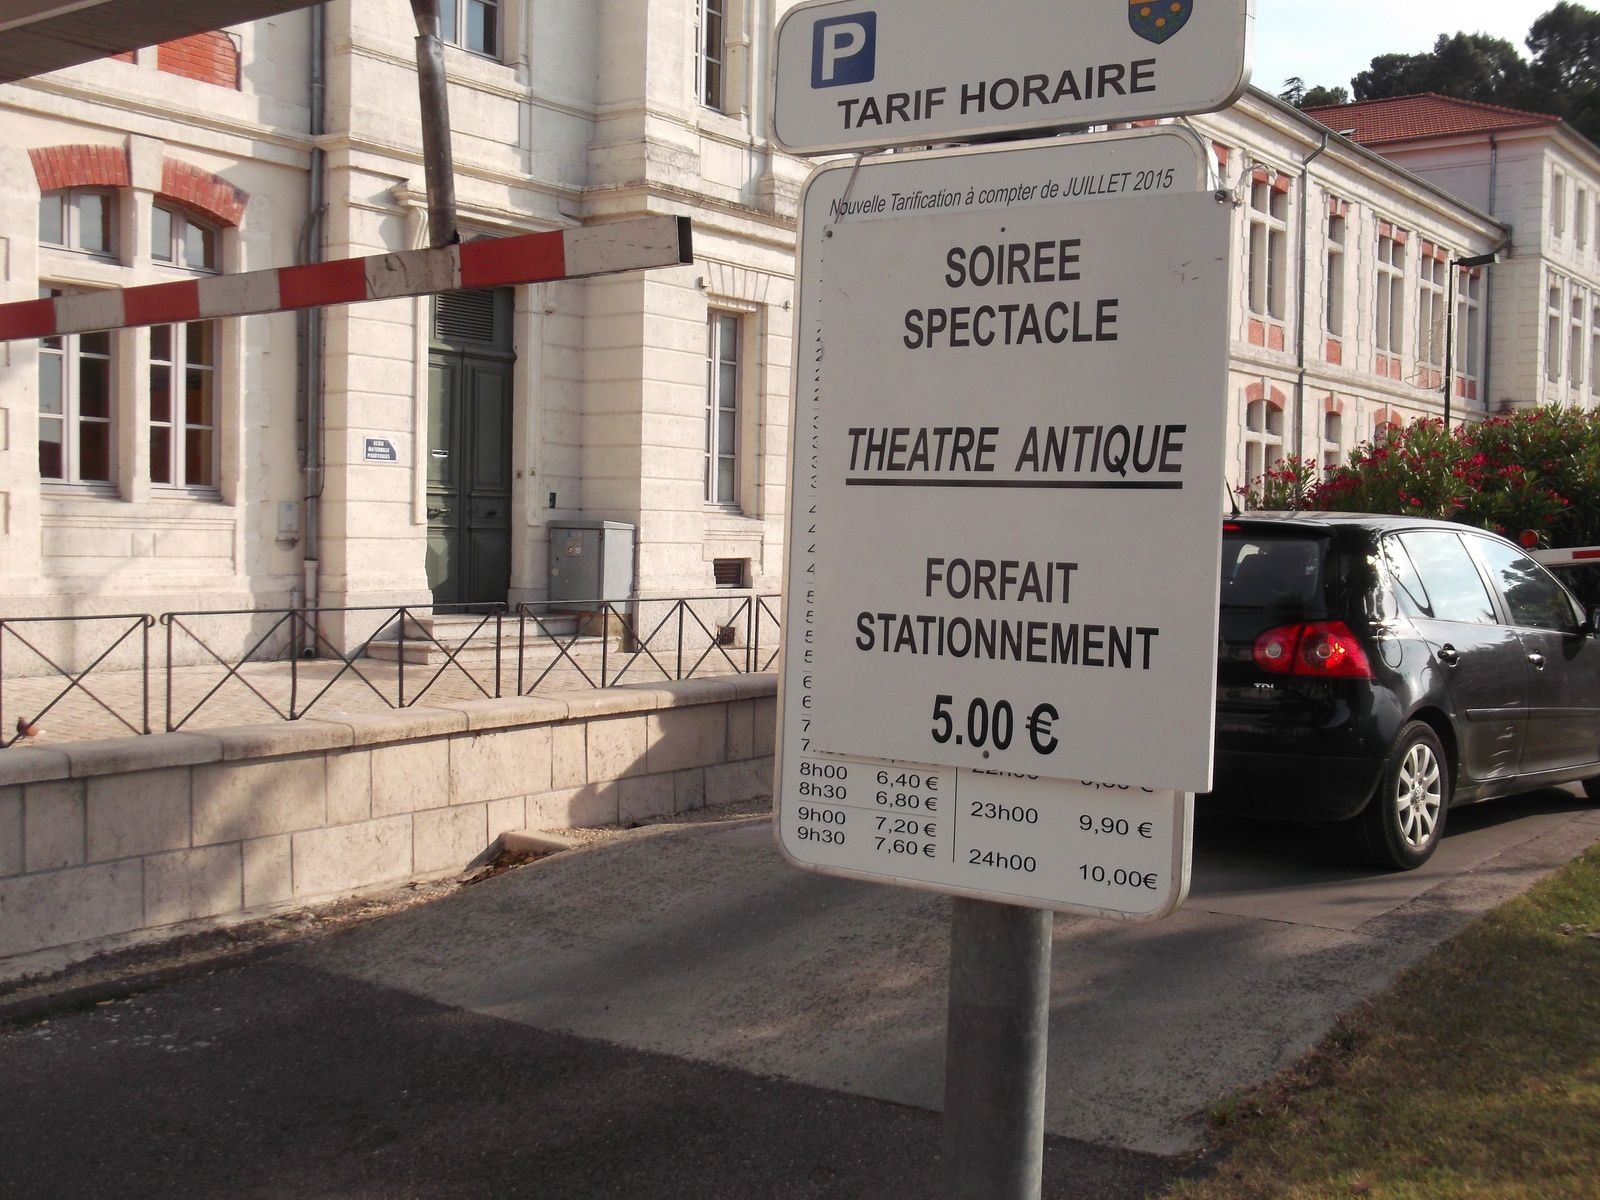 Le parking du théâtre antique plein